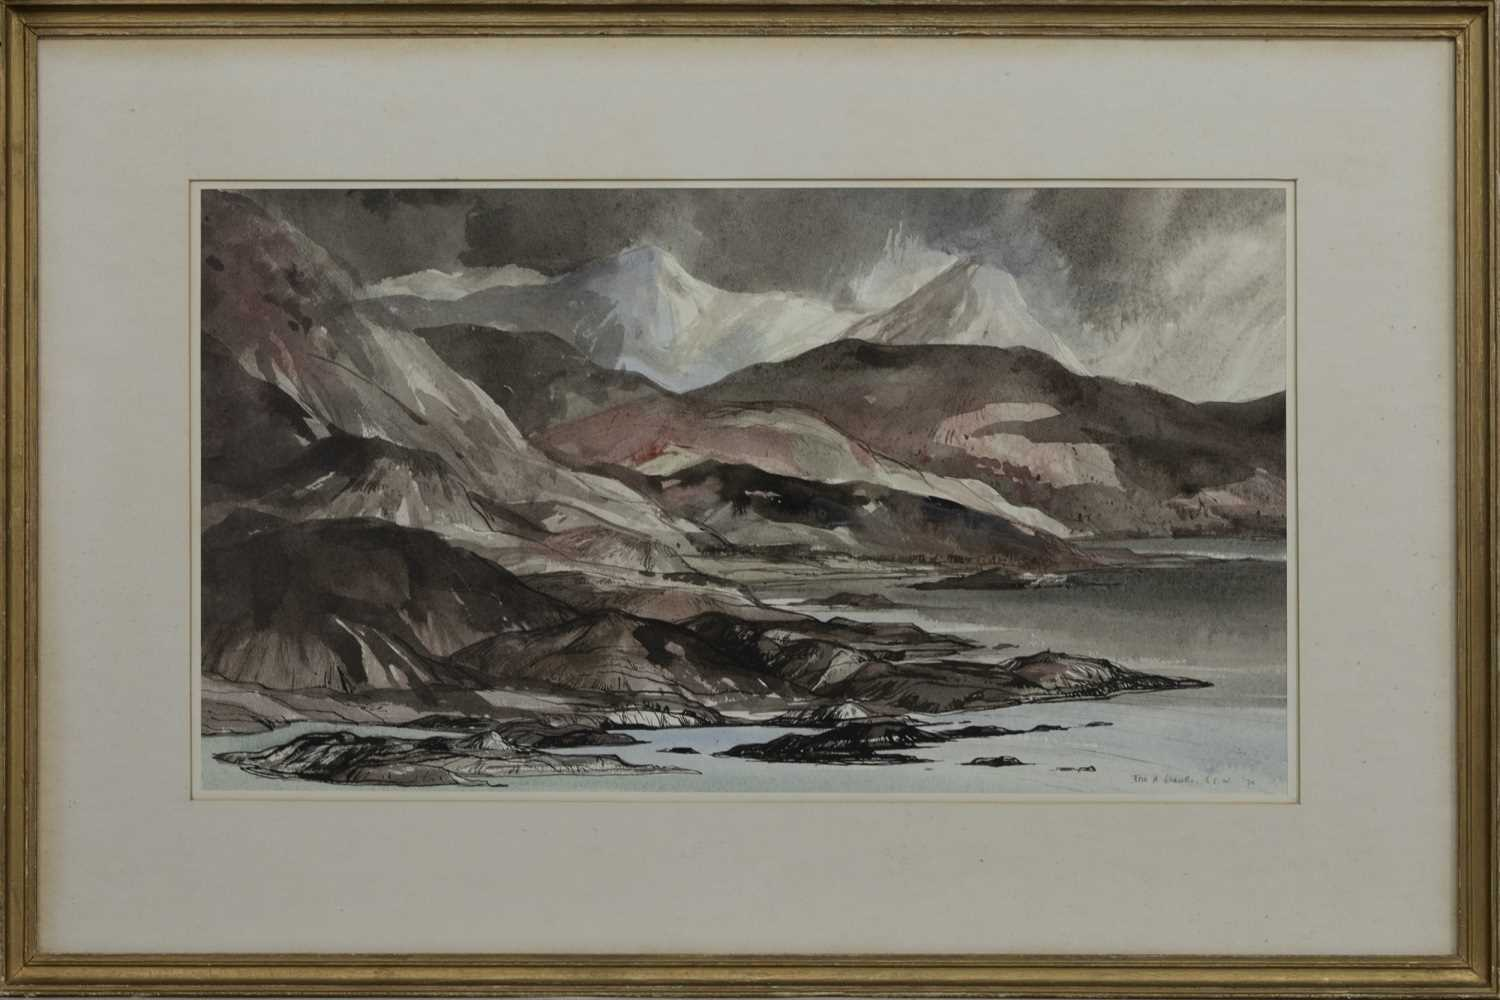 Lot 572 - MOUNTAINS OF KNOYDART, A WATERCOLOUR BY TOM SHANKS